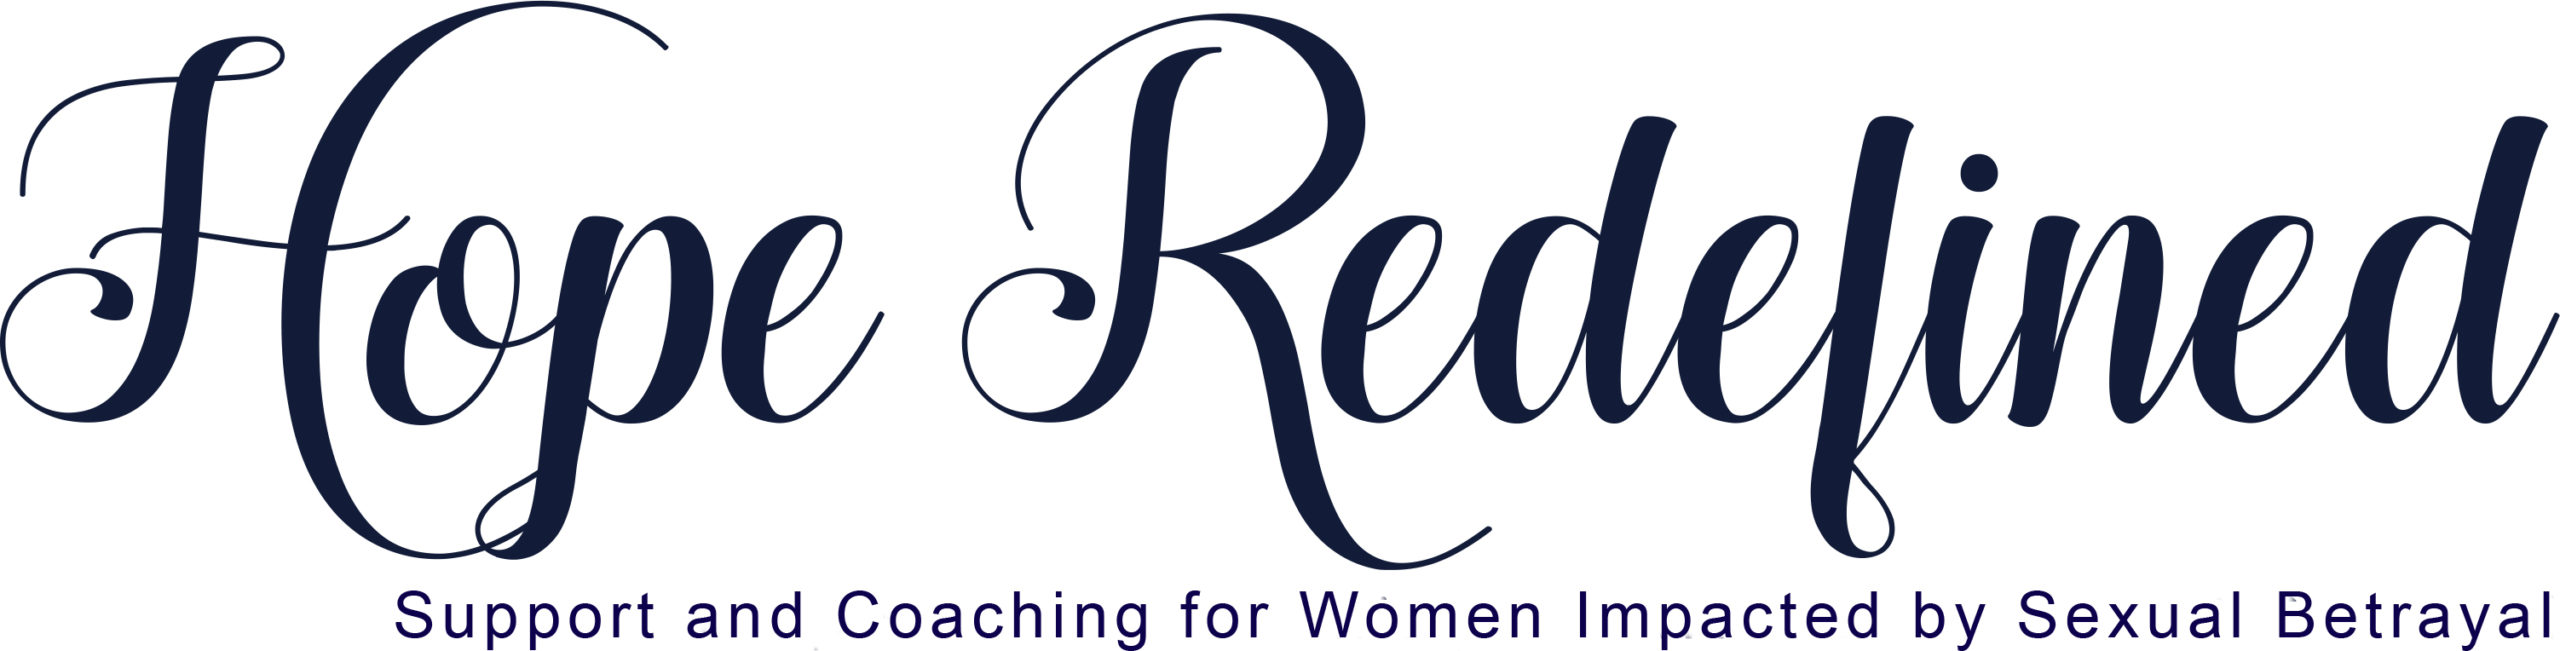 Hope Redefined Support and Coaching for Women Impacted by Sexual Betrayal